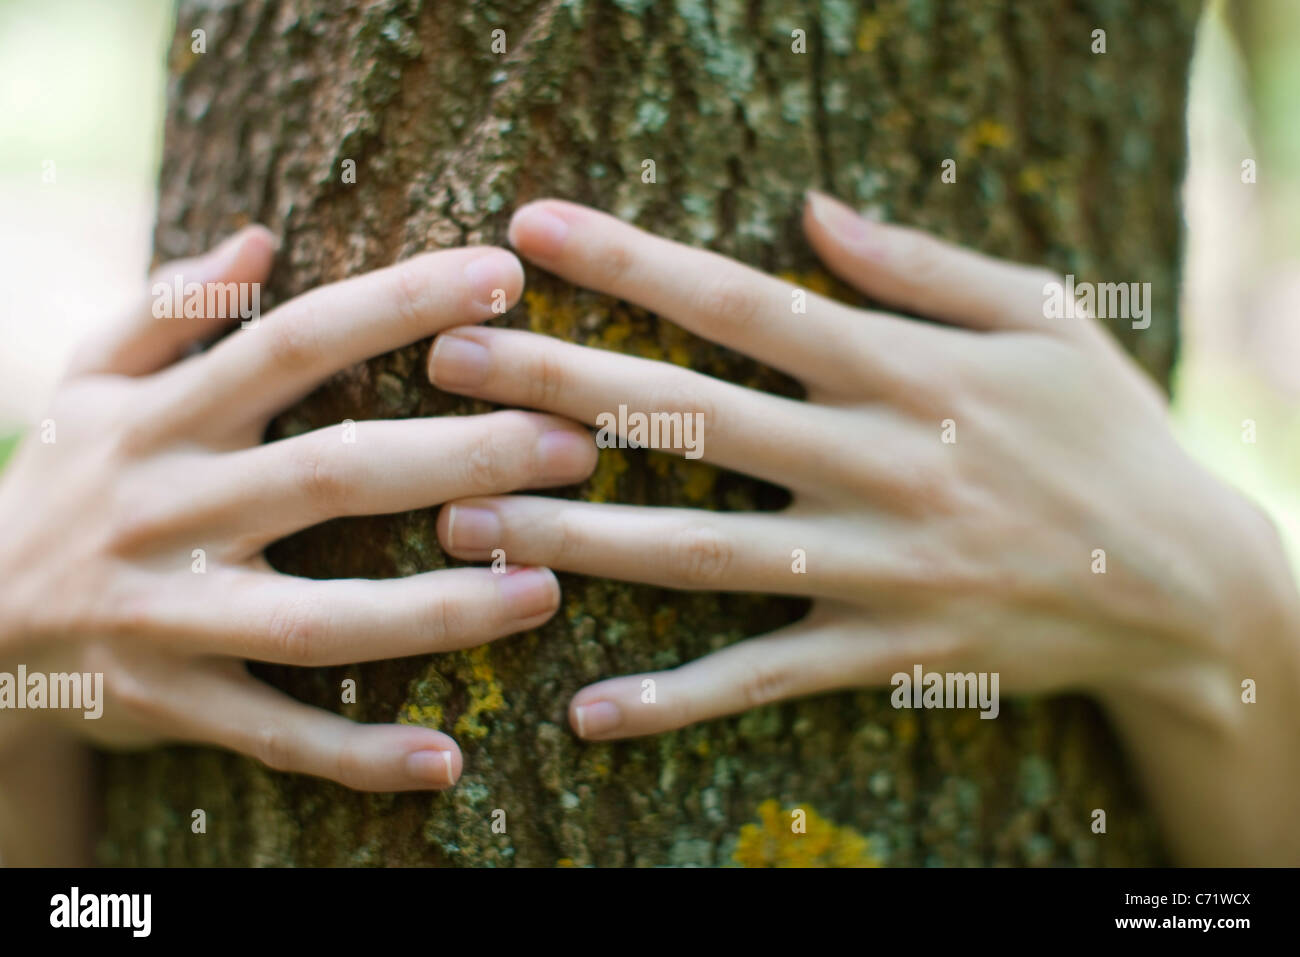 Woman's hands embracing tree - Stock Image